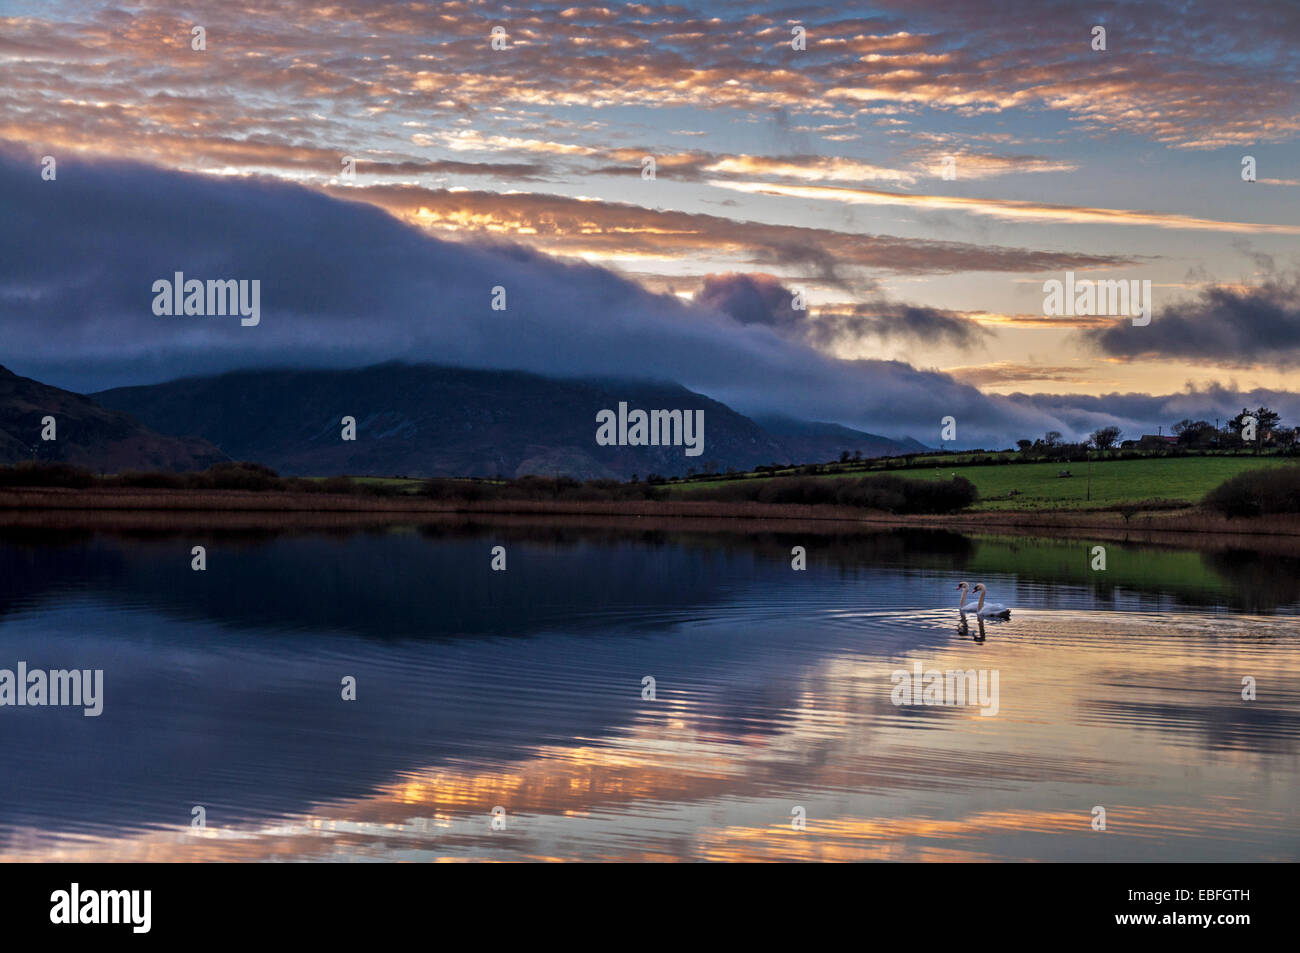 Lake Shanaghan, Ardara, County Donegal, Ireland. 30th November, 2014. Two swans on one of Donegal's many lakes - Stock Image